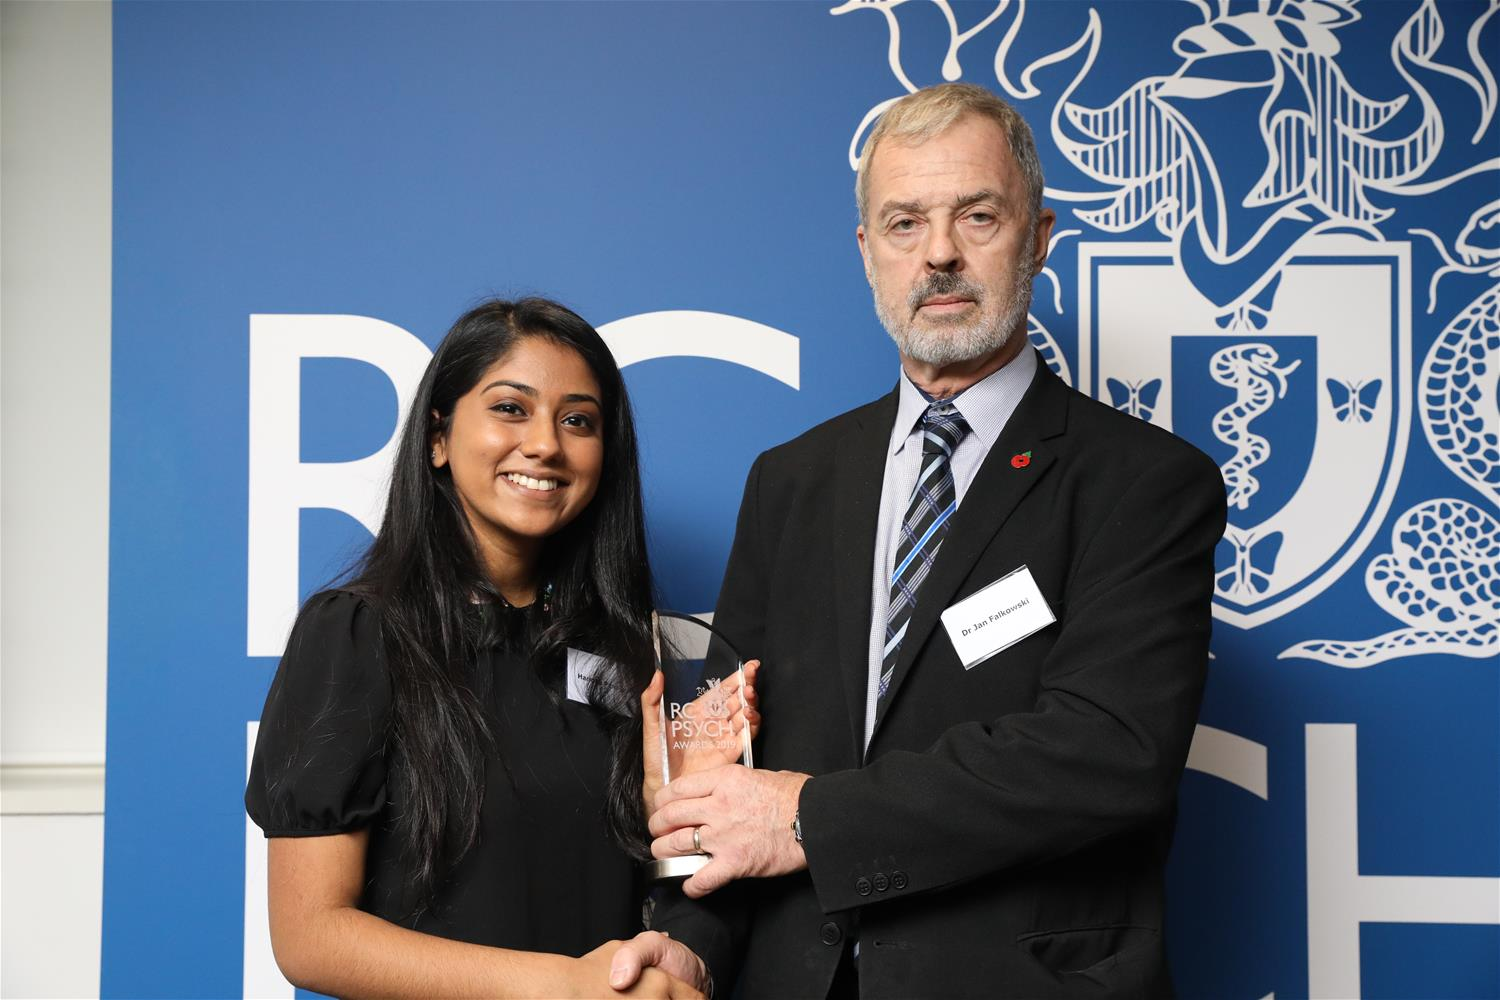 Haridha Panadian receives her award